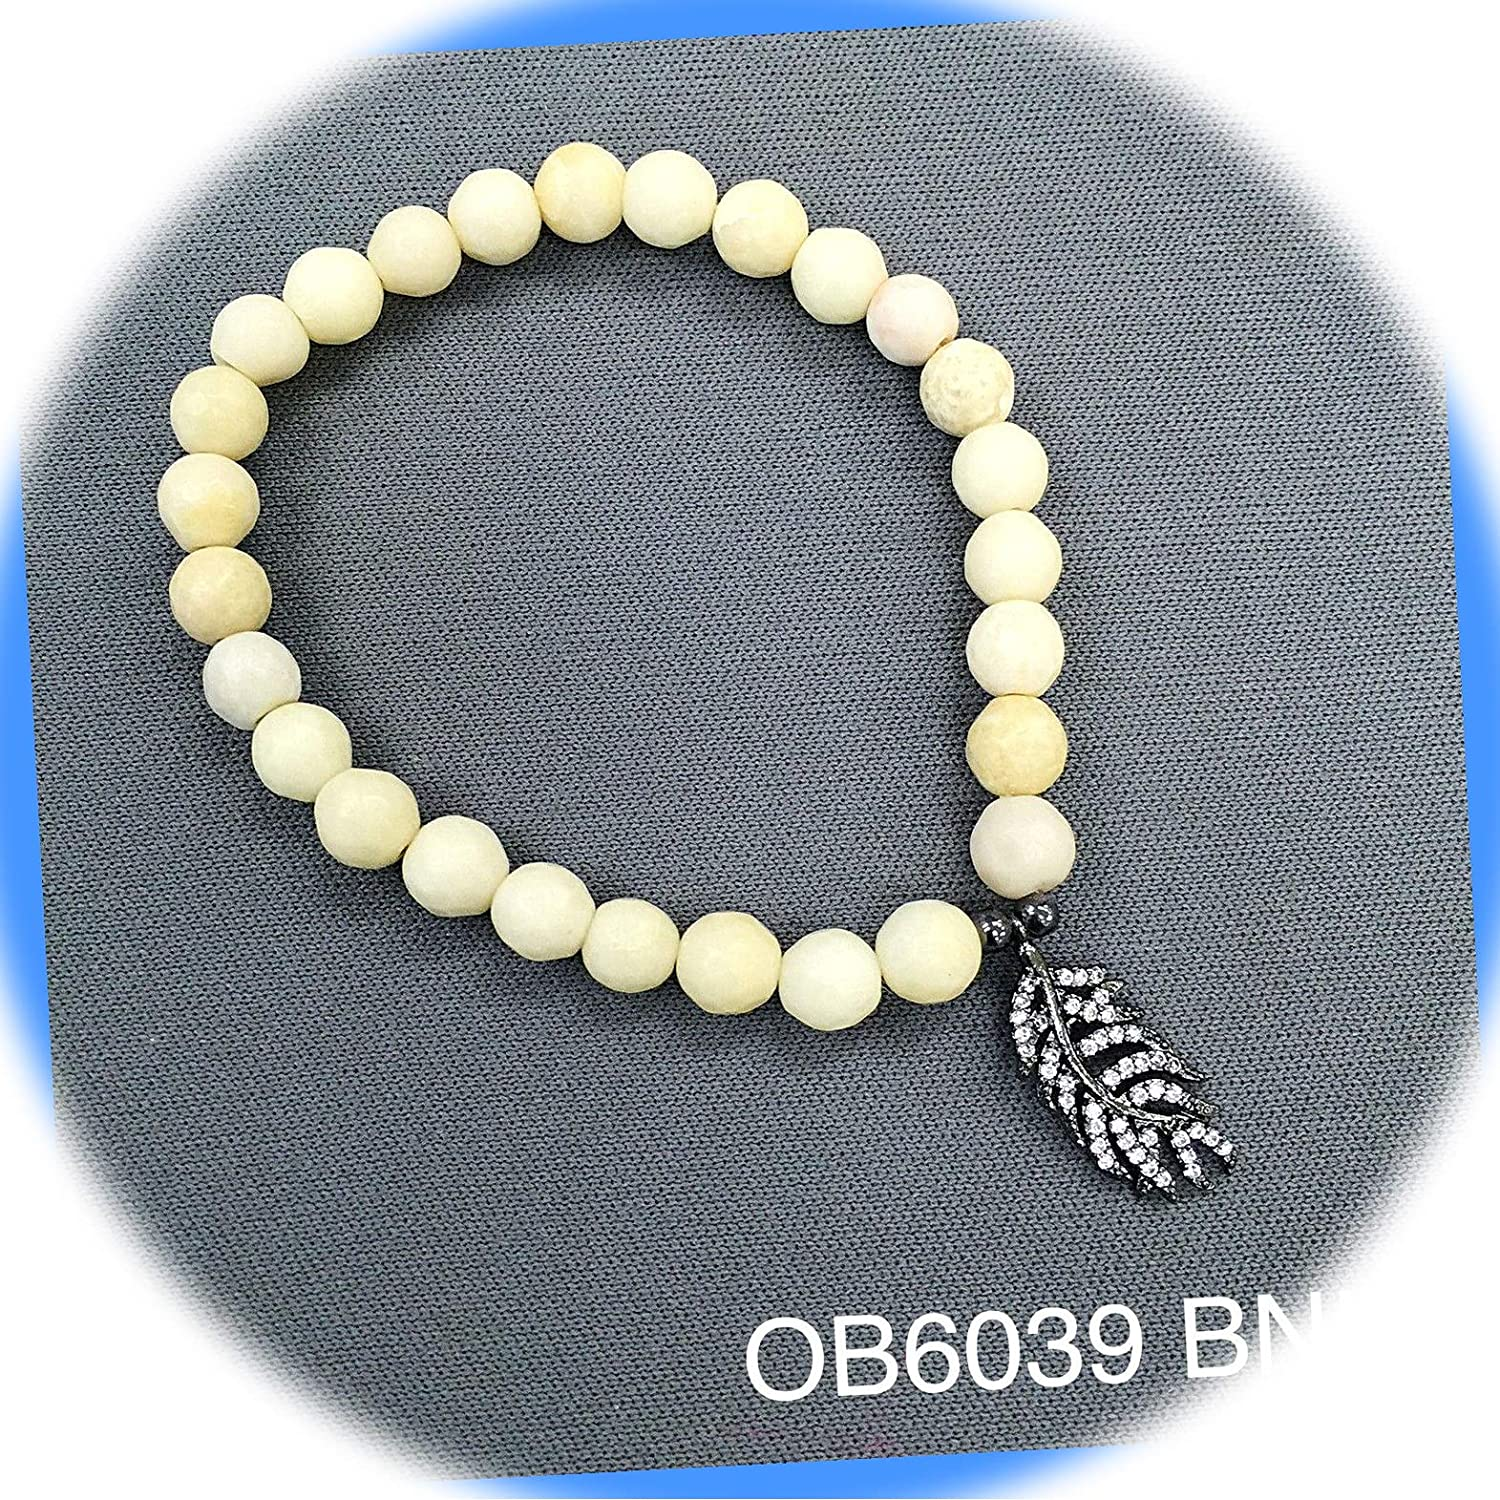 Be super welcome New Ivory Beaded Semi-Precious Award Cubic Zirconia Charm Stre Feather